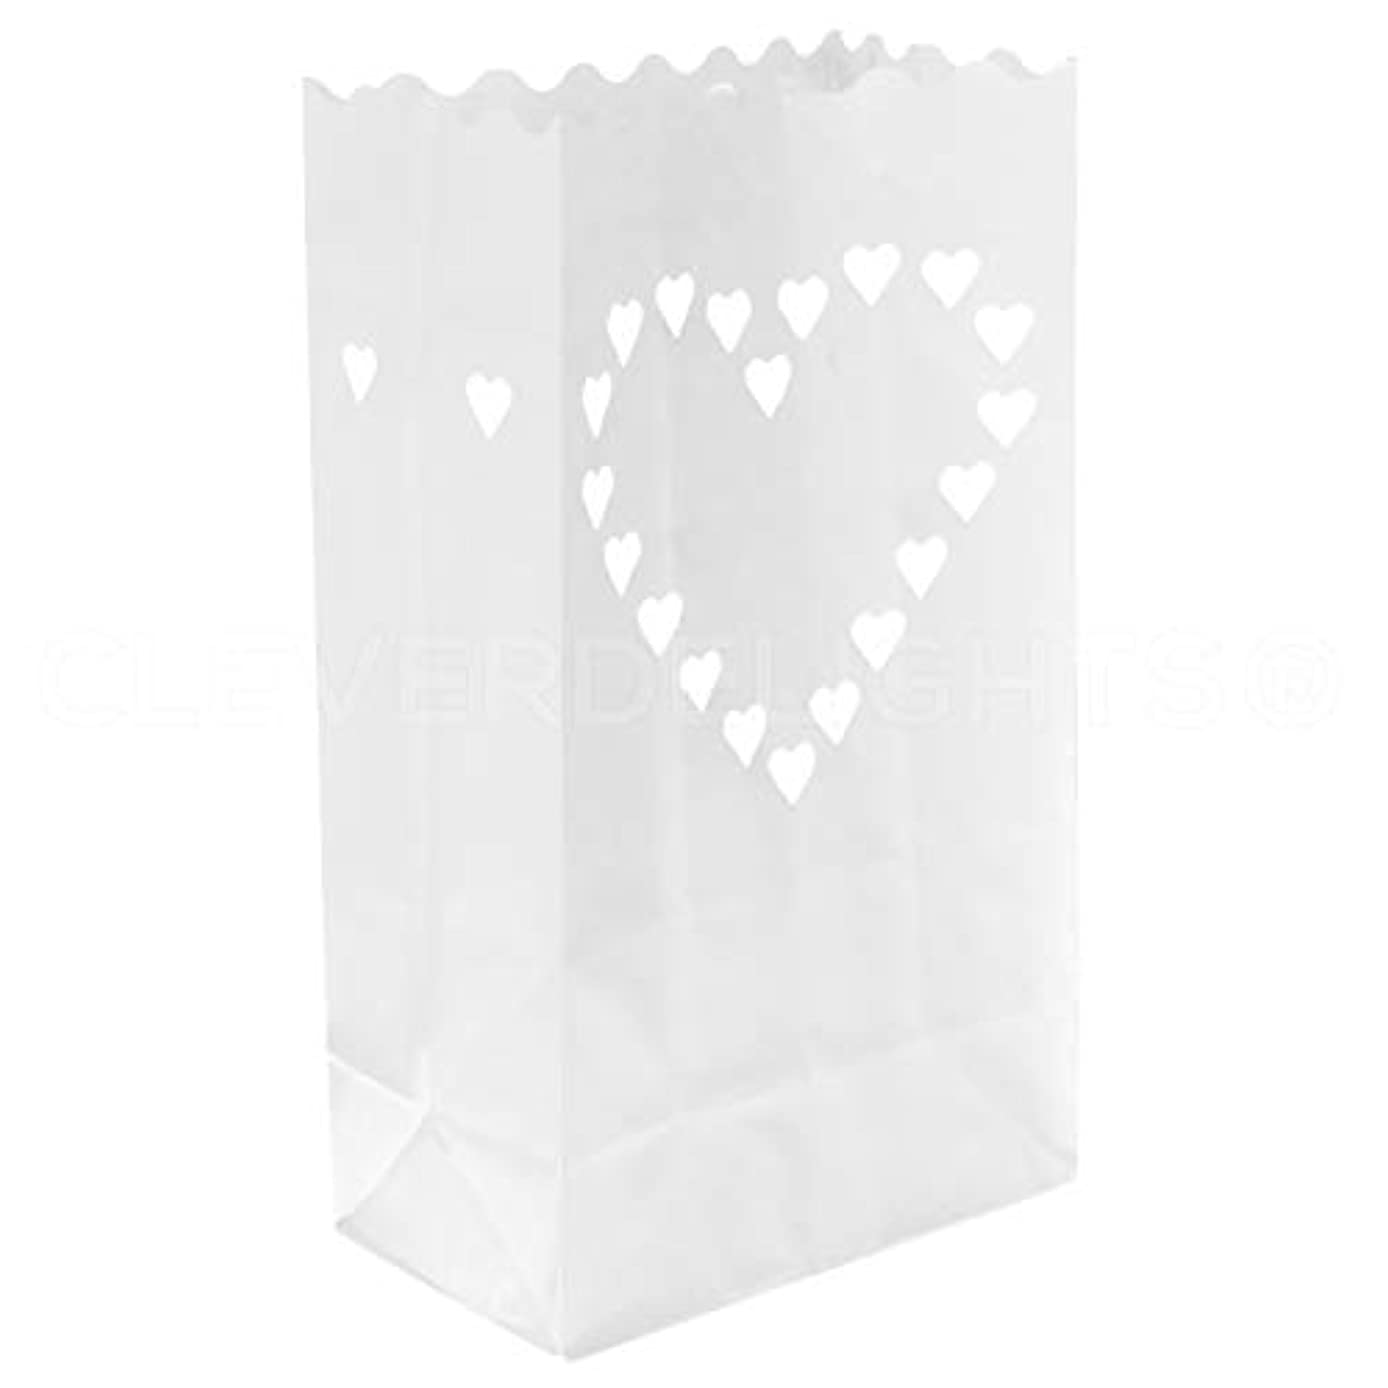 CleverDelights White Luminary Bags - 10 Count - Big Heart Design - Flame Resistant Paper - Wedding, Reception, Party and Event Decor - Luminaria Candle Bag